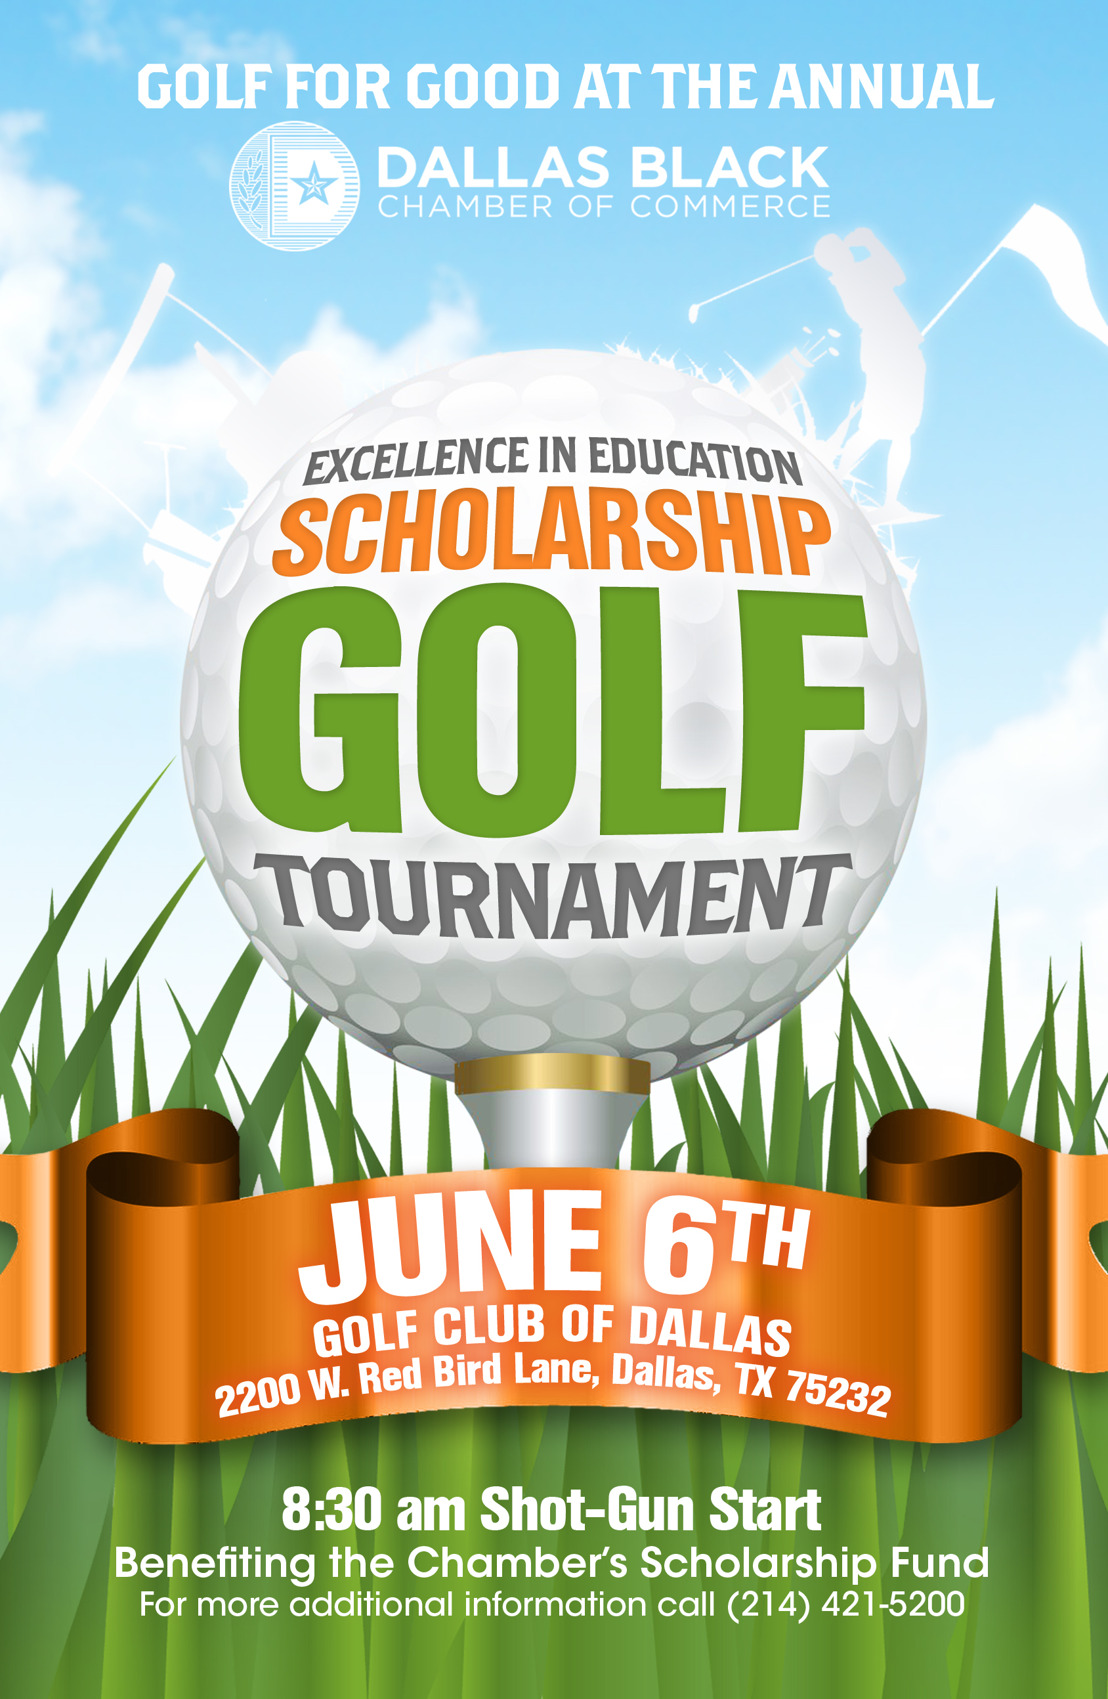 Dallas Black Chamber of Commerce Excellence in Education Scholarship Golf Tournament